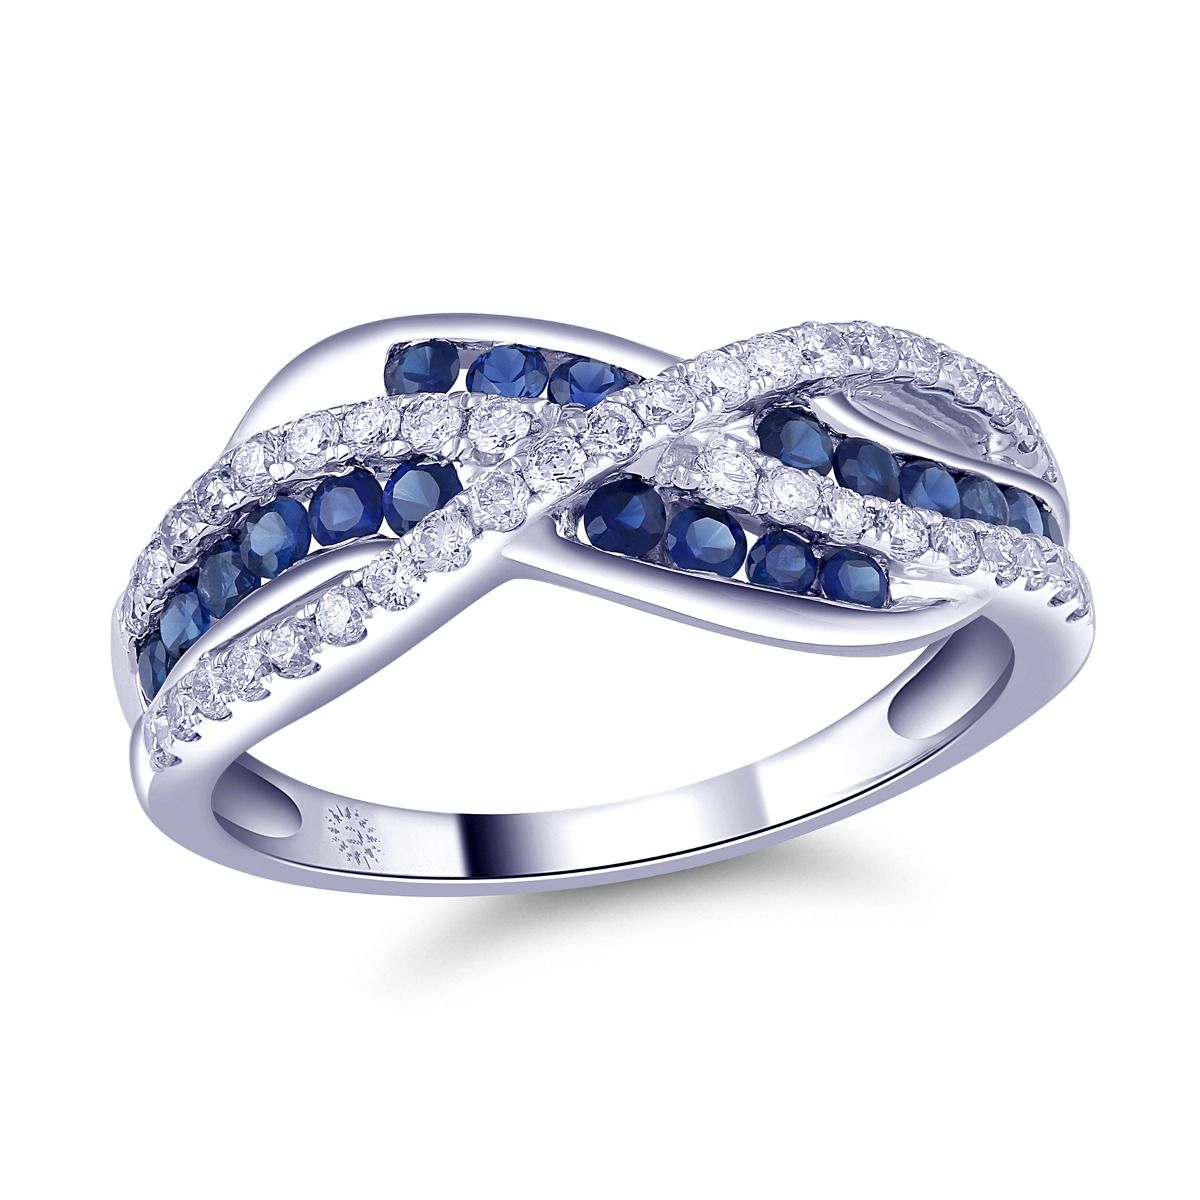 Genuine Sapphire And Diamond Multi Row Anniversary Band In 14k White Gold, 3/8ctw Regarding Best And Newest Diamond Multi Row Anniversary Bands In White Gold (View 10 of 25)